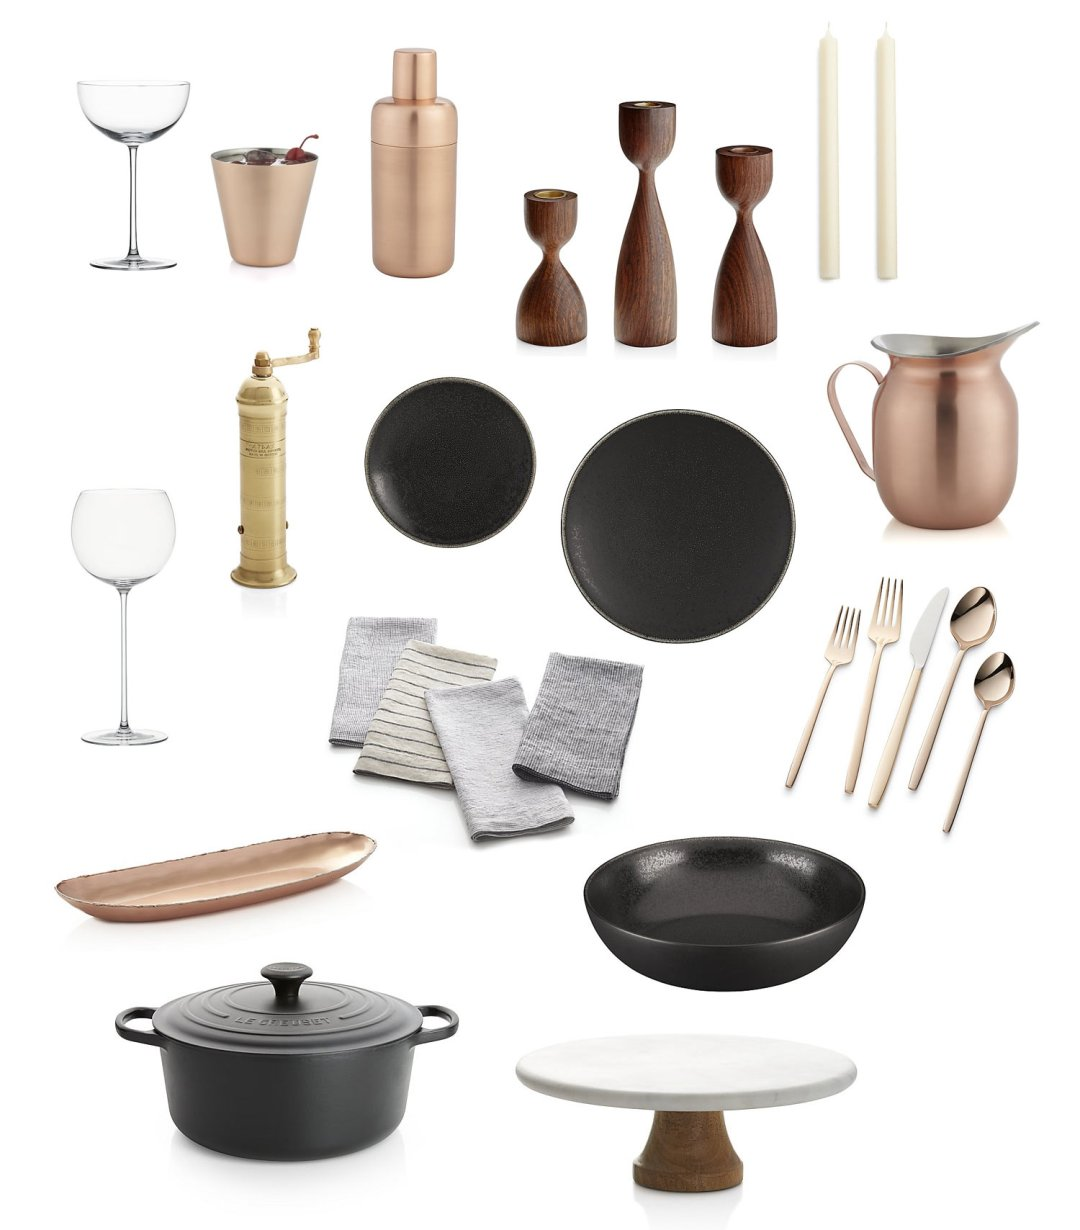 Black cookware and dinner plates, copper serverware and rose gold flatware